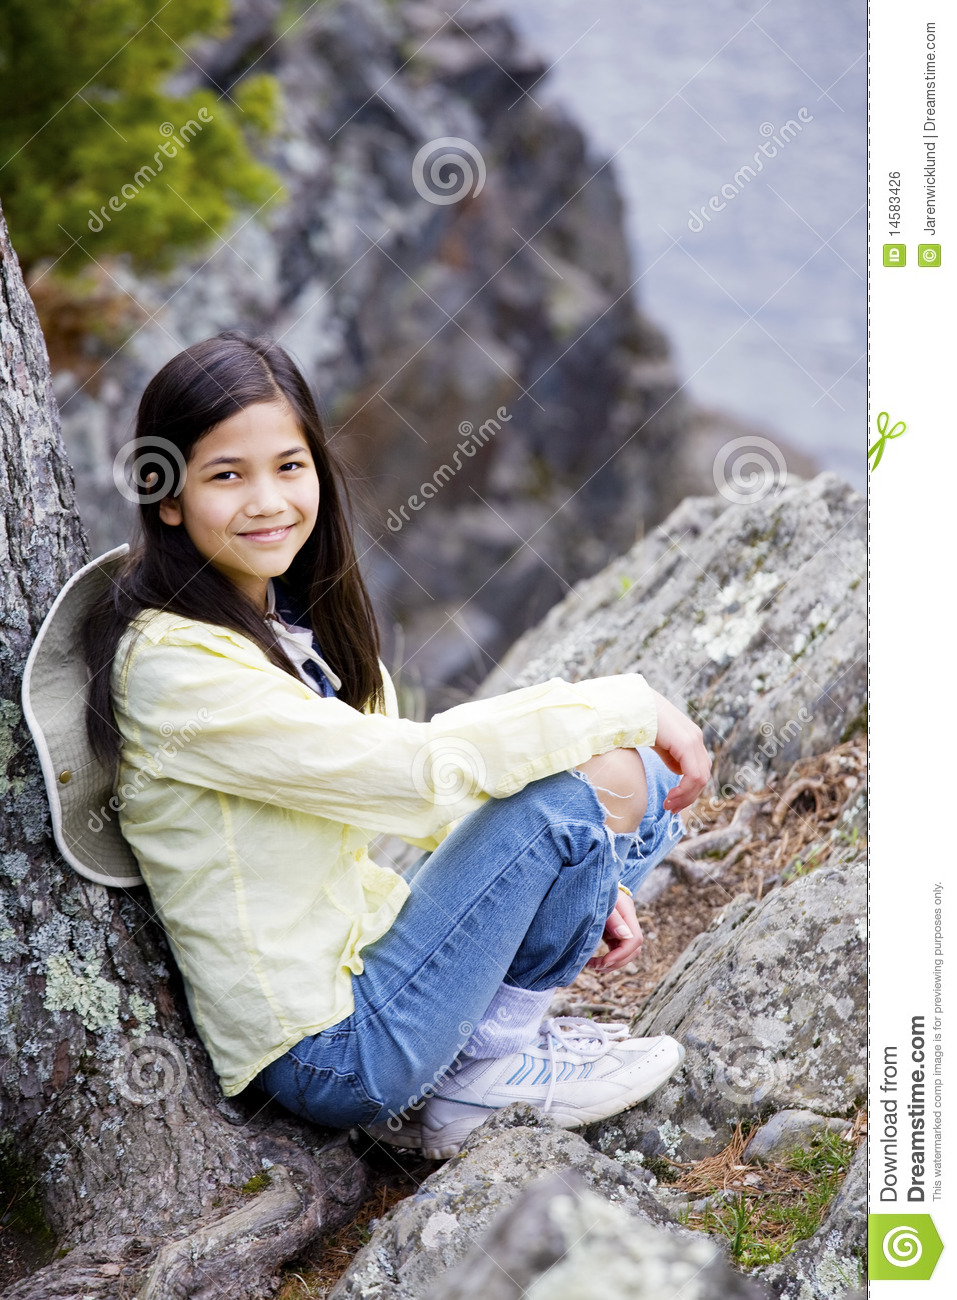 Girl sitting on rock geil